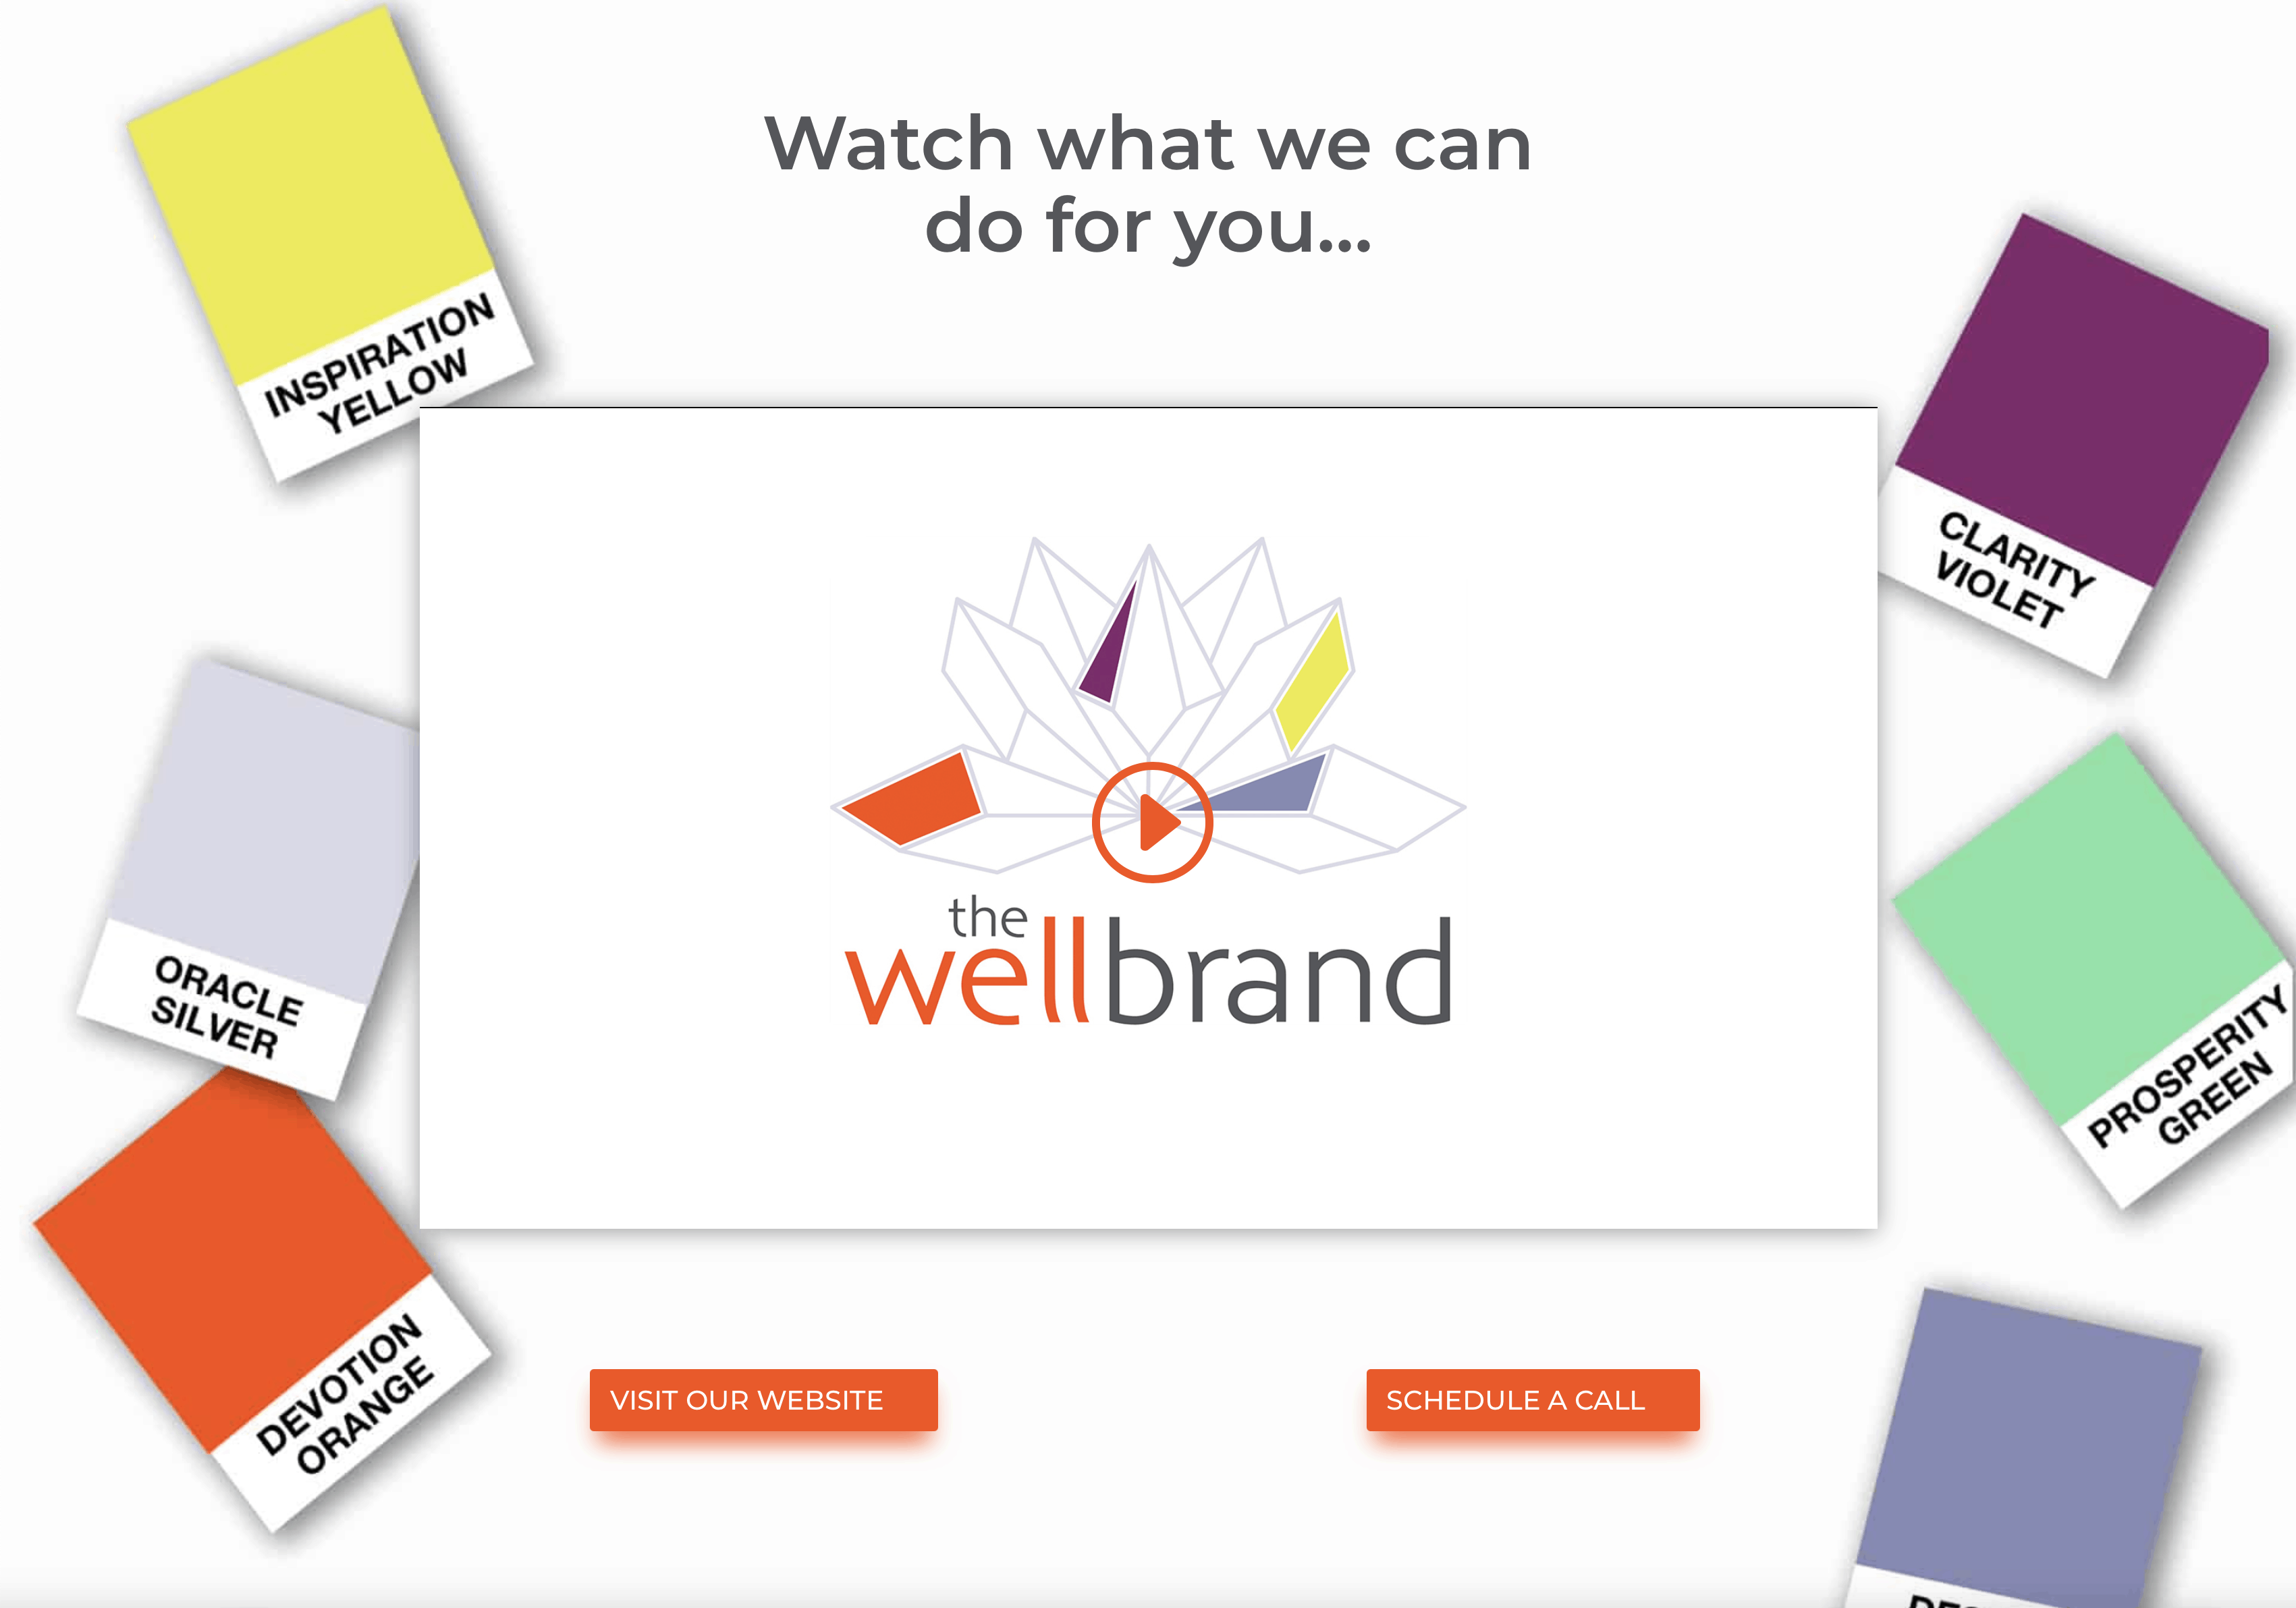 Introducing The WellBrand video